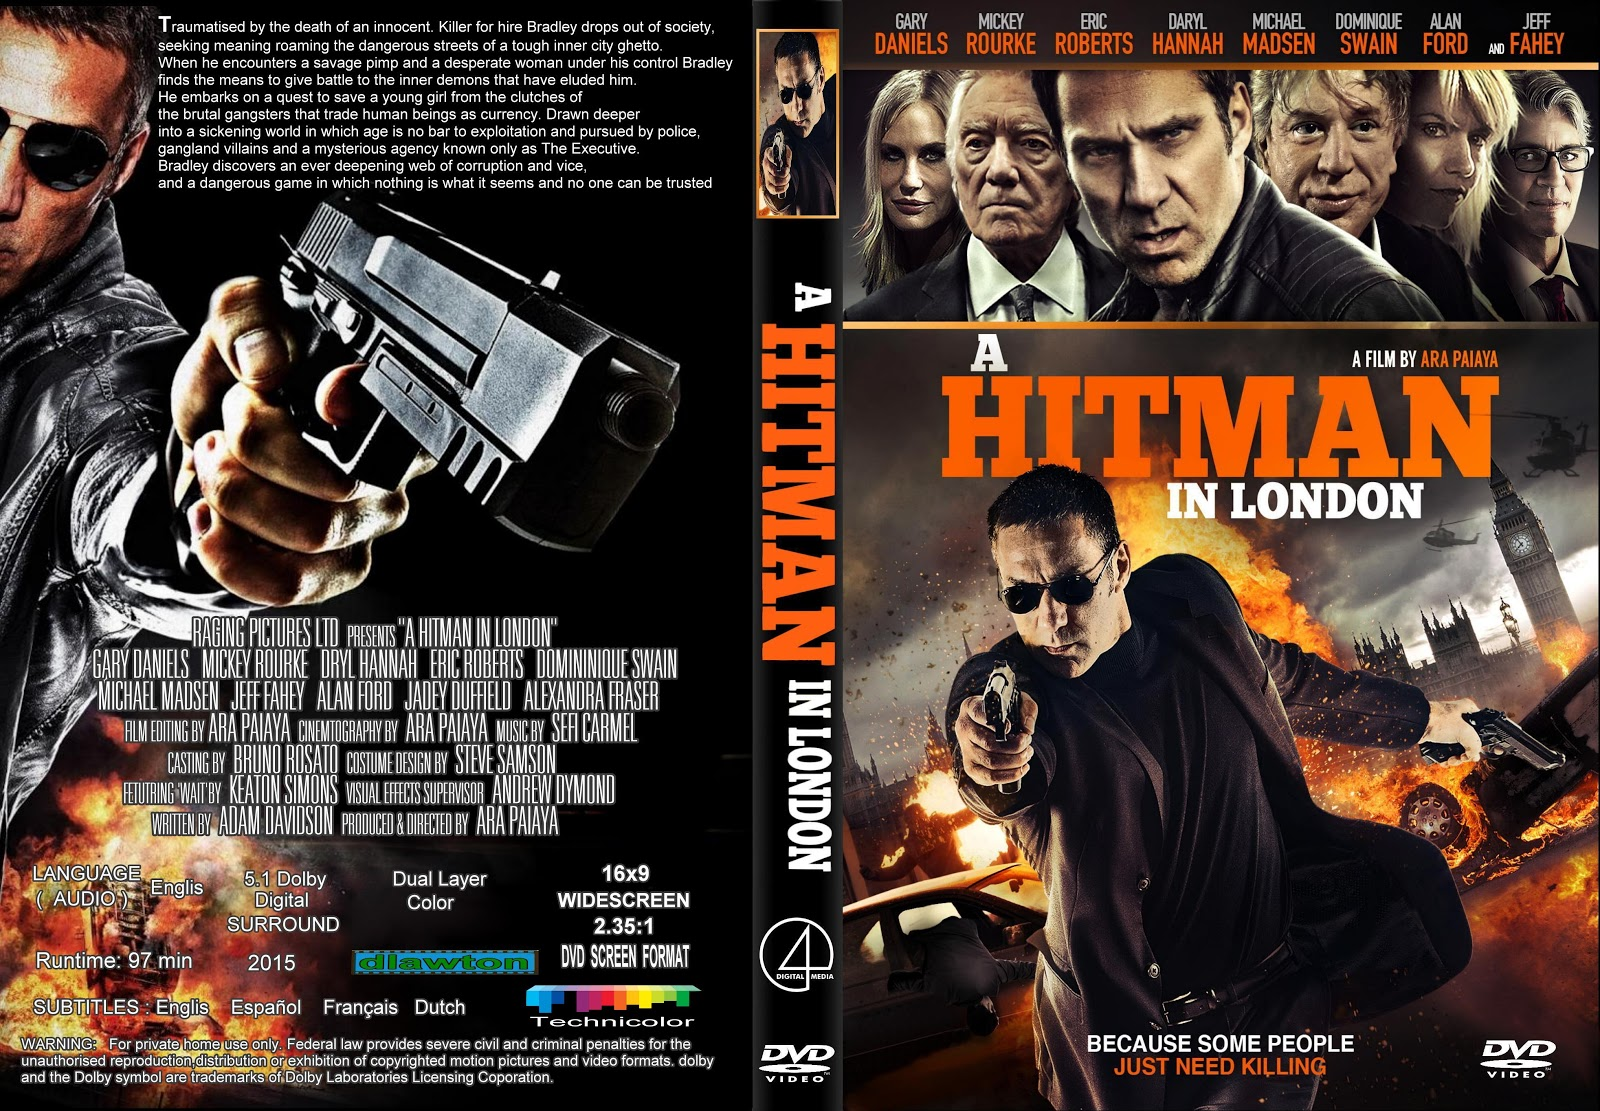 Download A Hitman in London BDRip XviD Dual Áudio A Hitman In London  282015 29 R2   Cover  26 Label DVD Movie